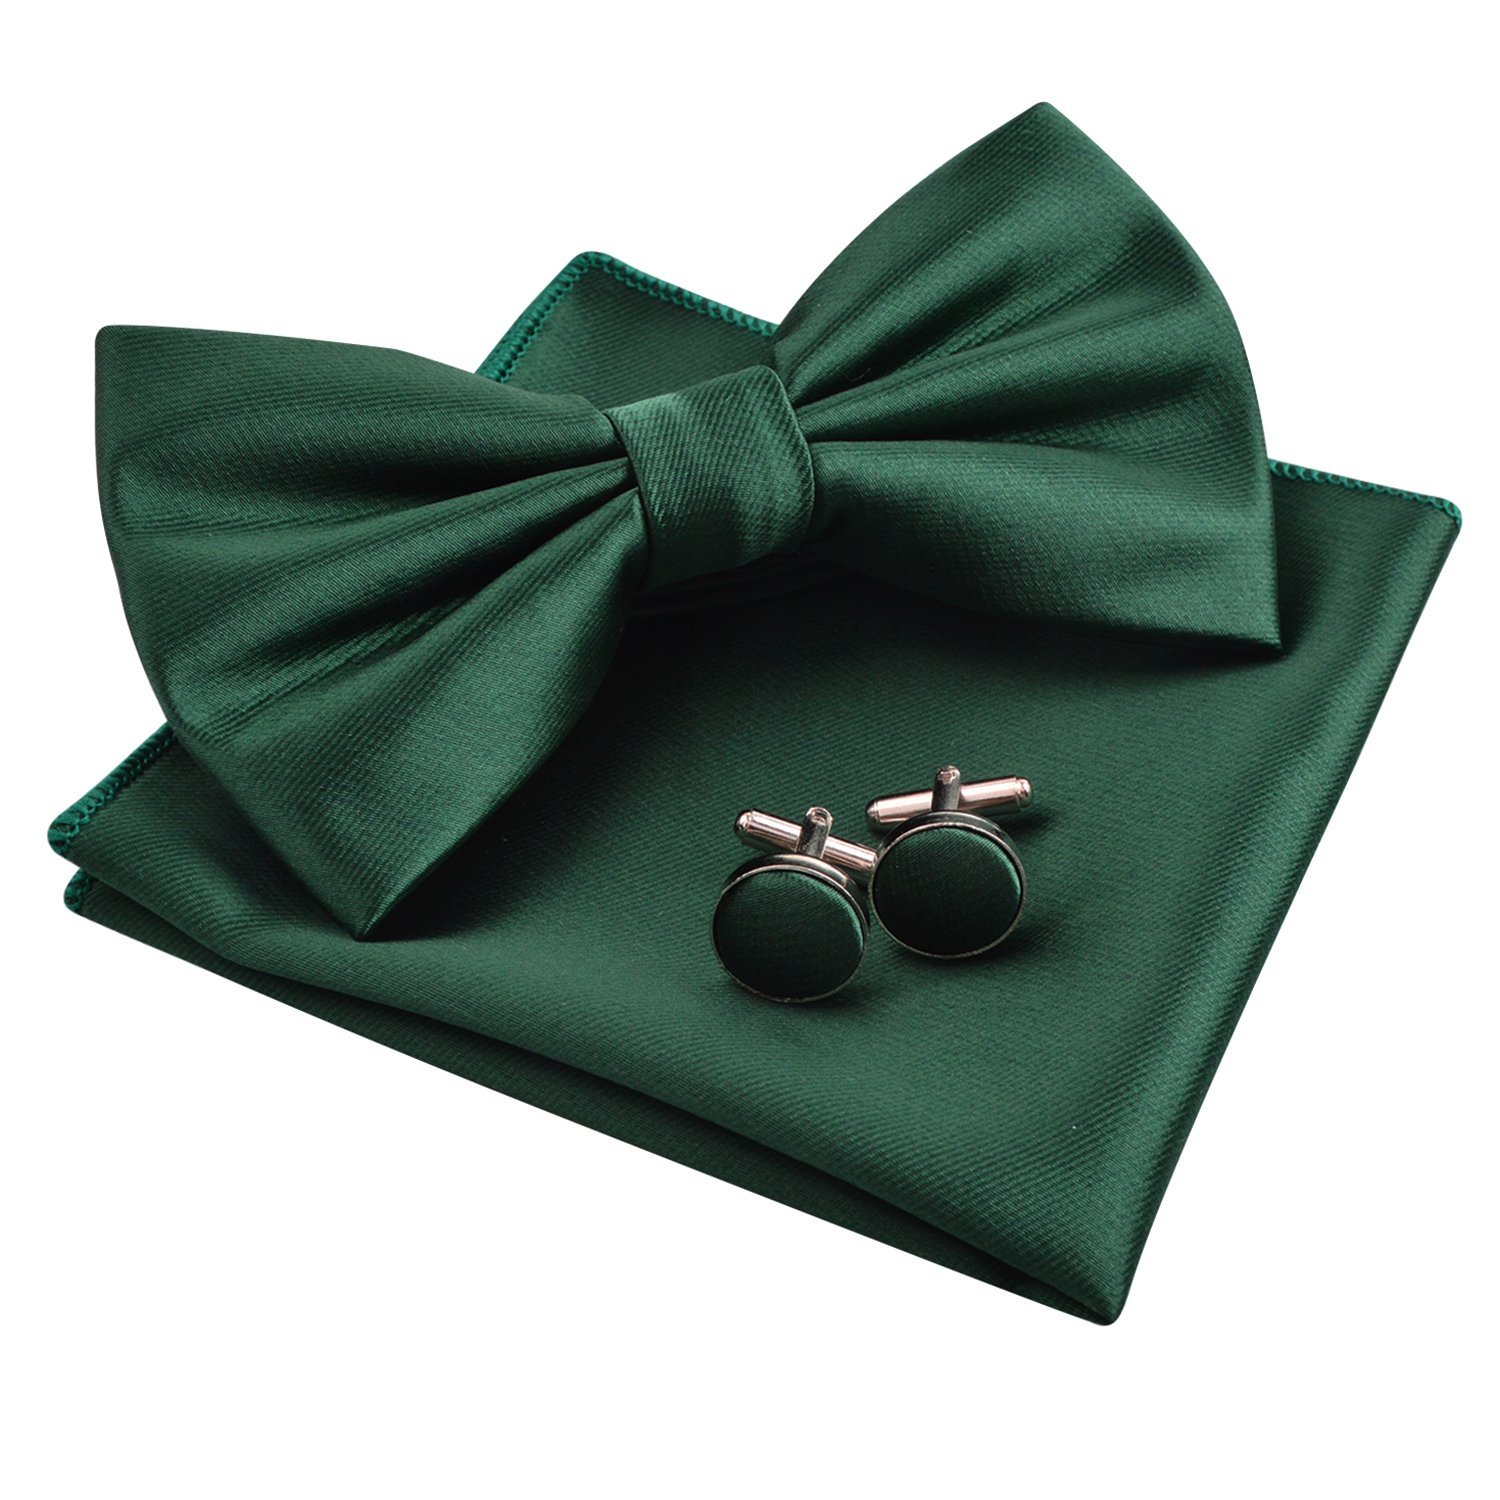 Alizeal Mens Tuxedo Bow Tie& Hanky& Cufflinks Set (Dark Green) by Alizeal